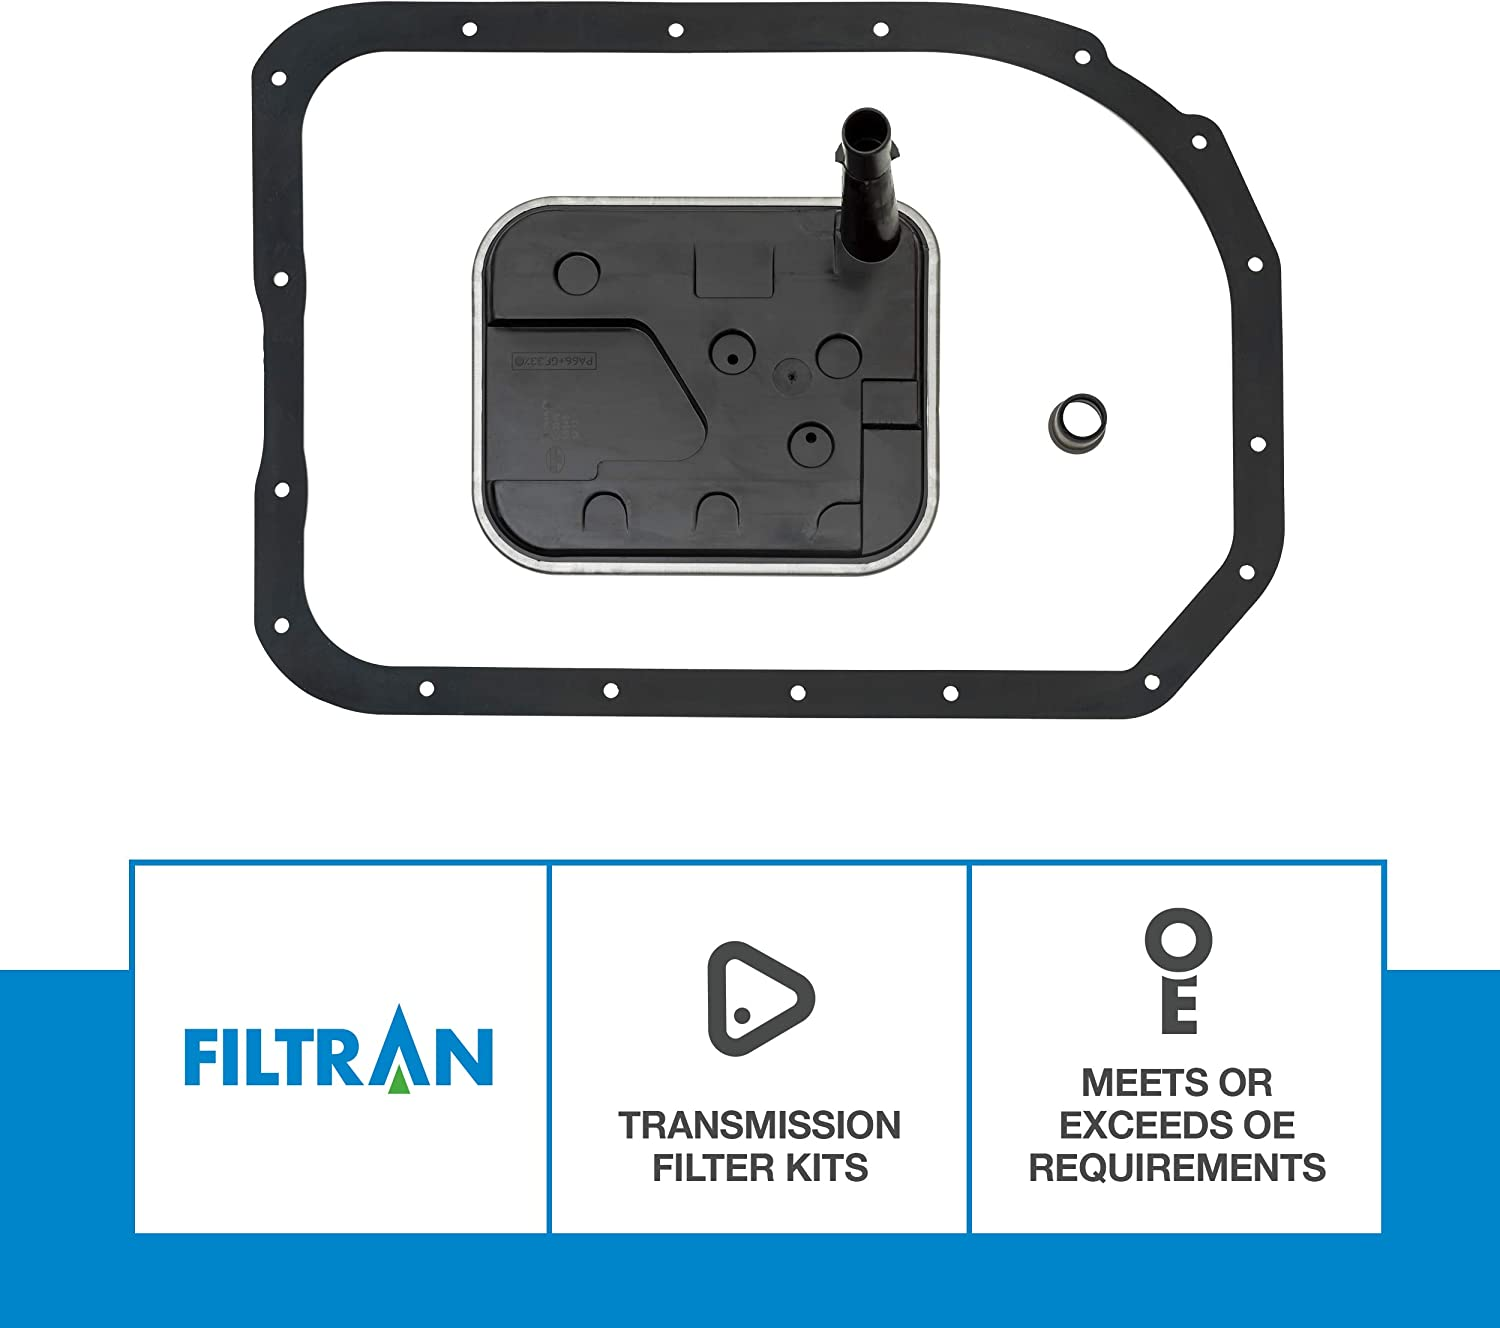 4l80e transmission diagram breakdown amazon com filtran tfk101 gm 4l80e deep pan filter kit automotive  gm 4l80e deep pan filter kit